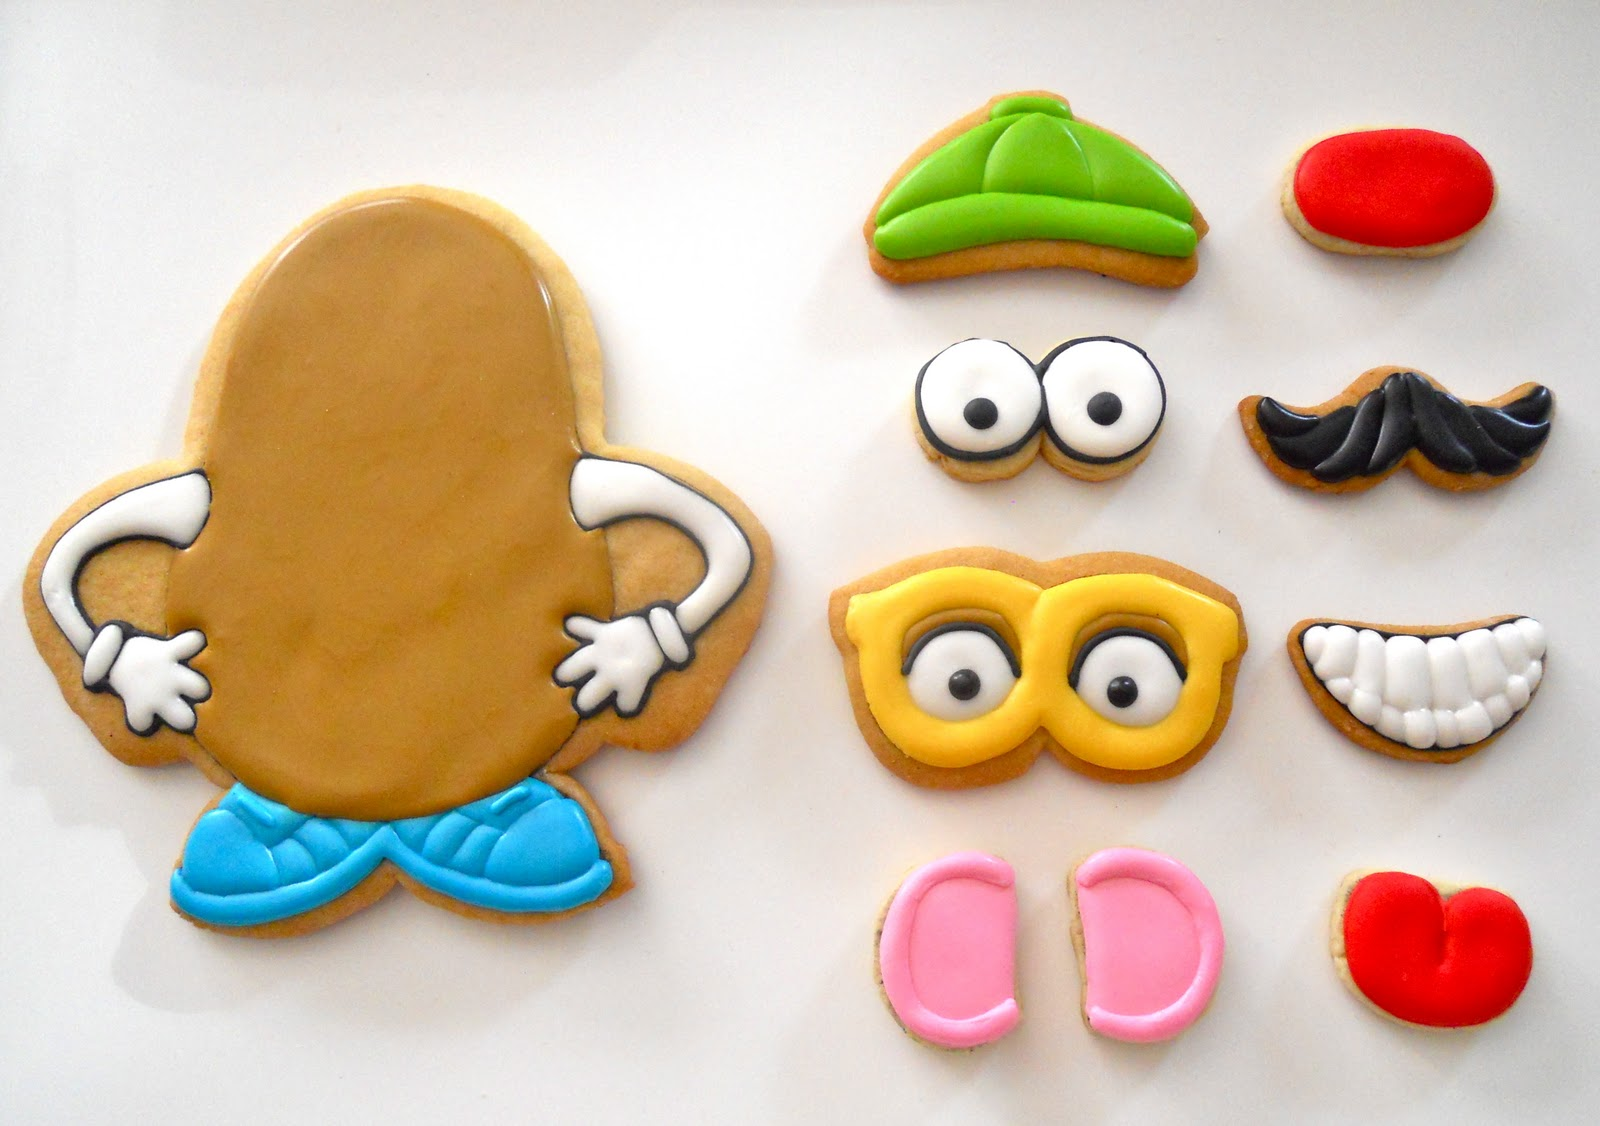 Mr. Potato Head sugar cookies